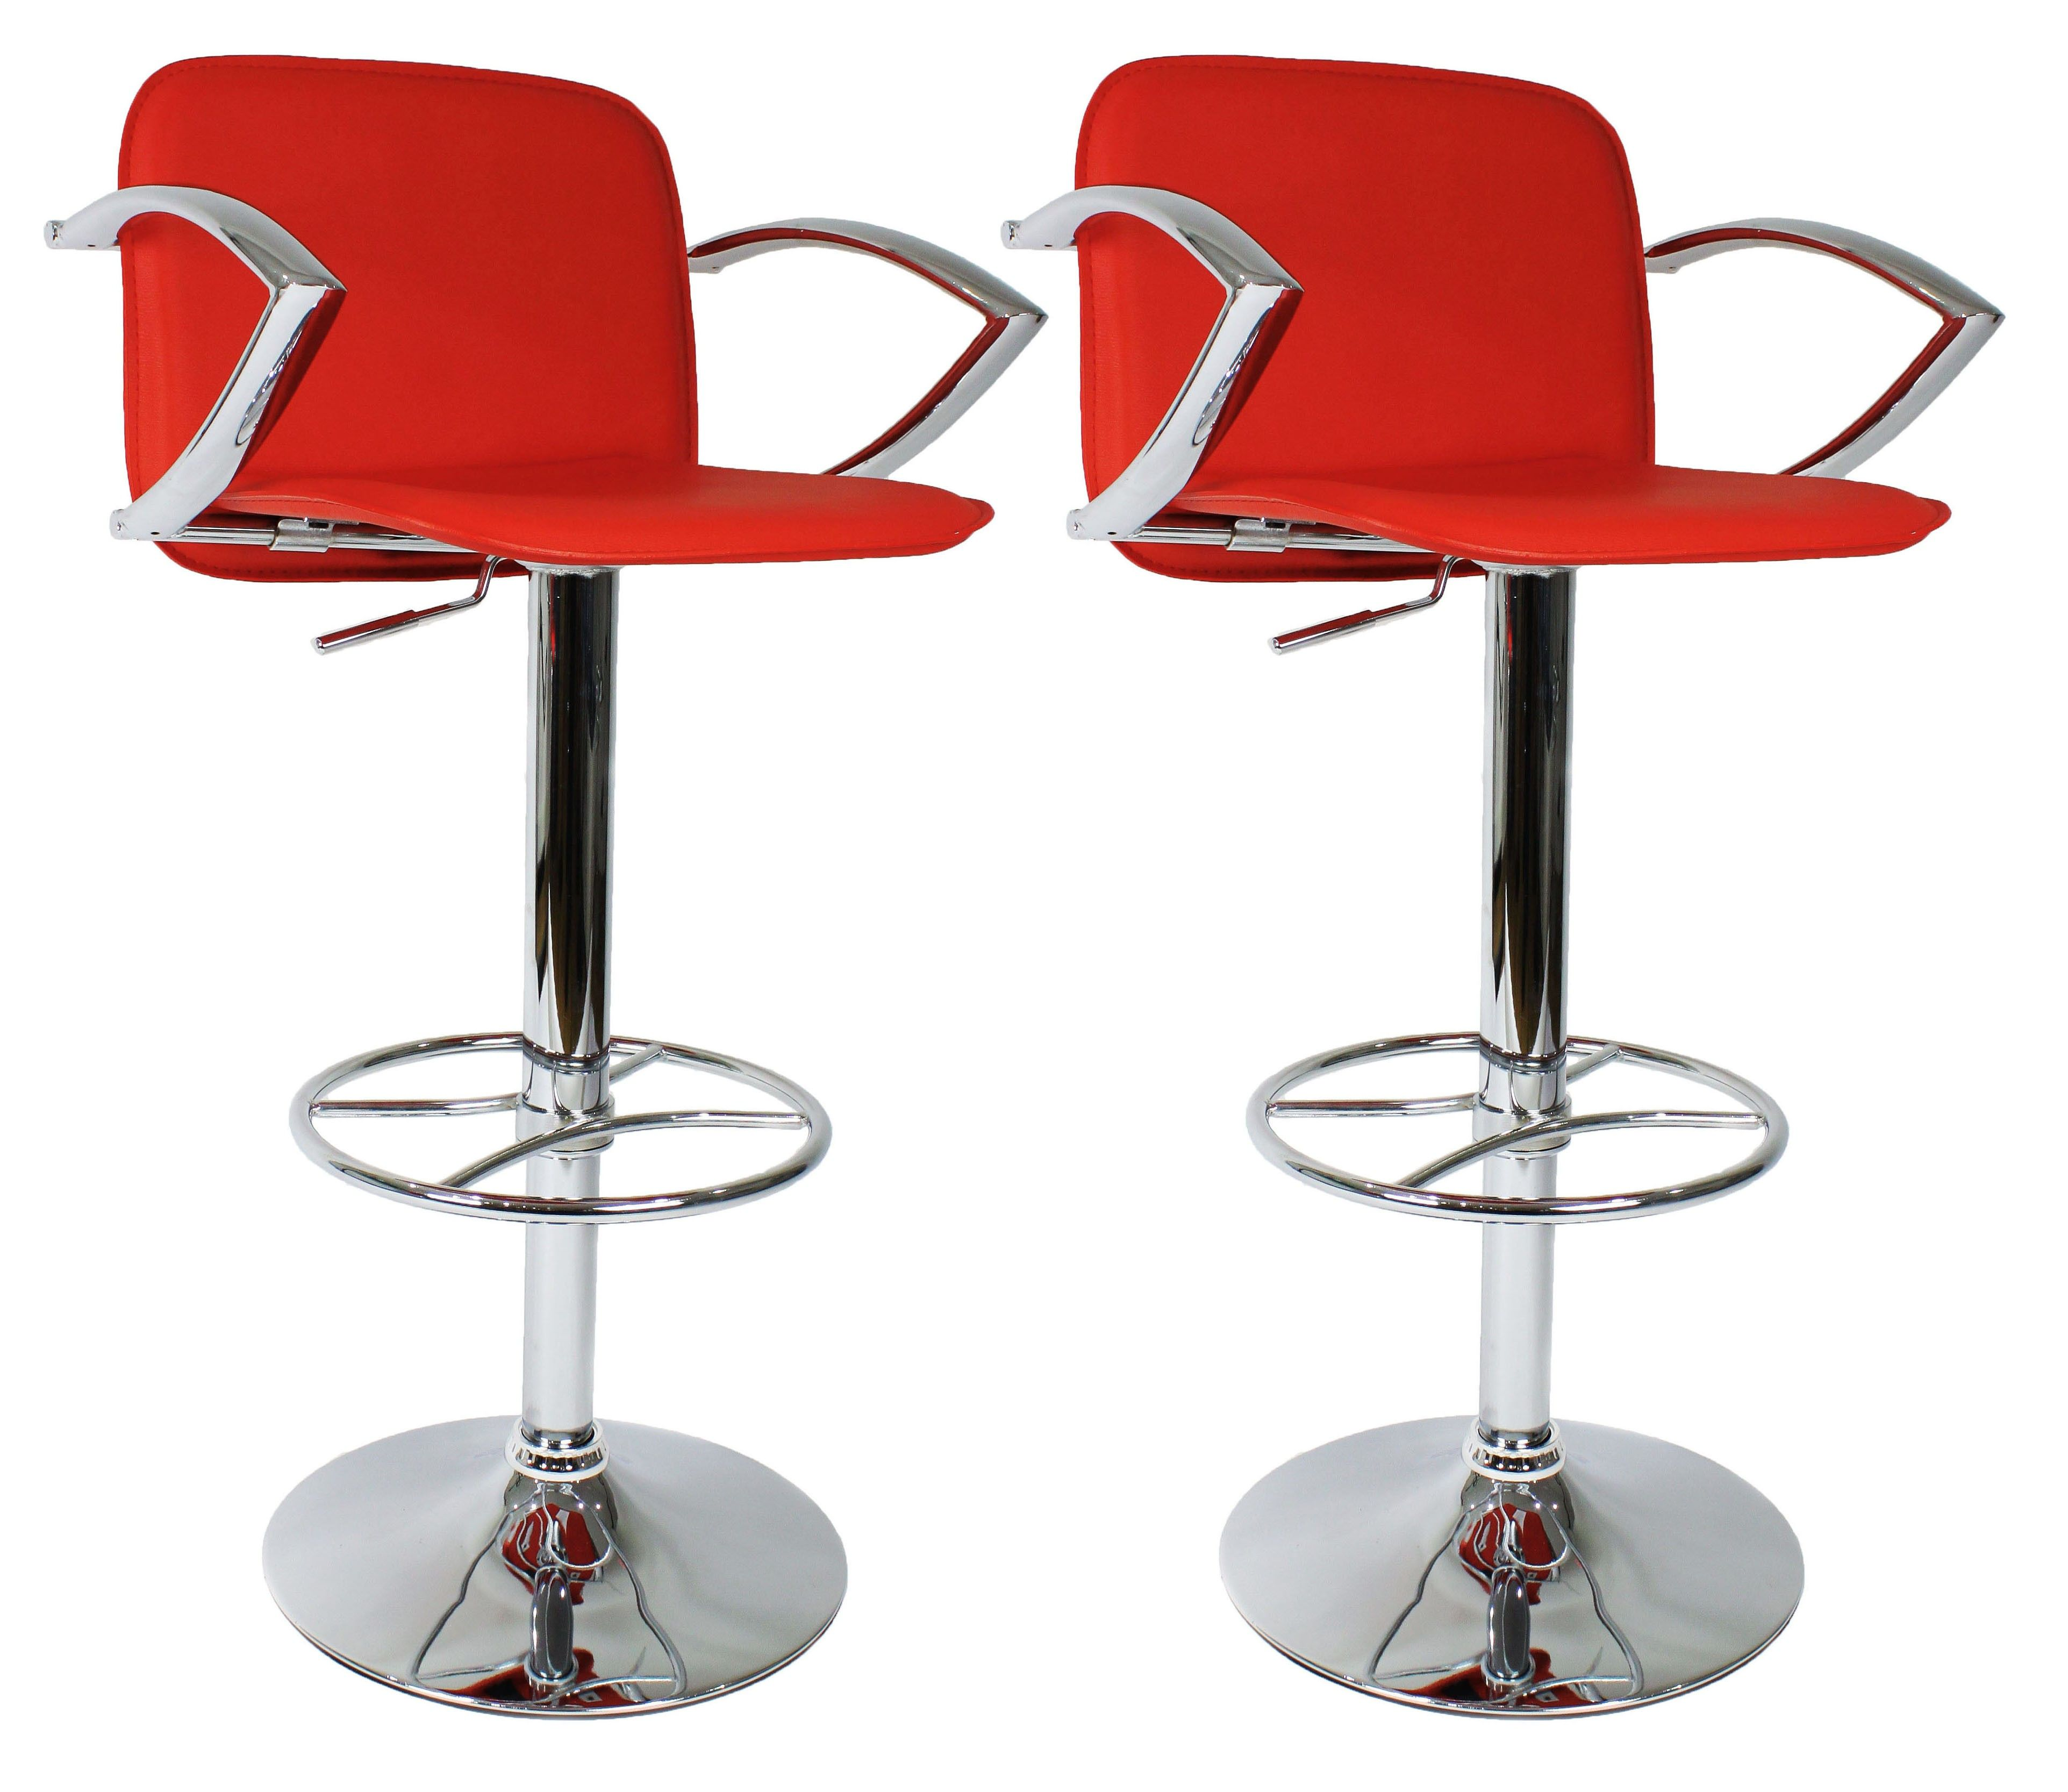 Urban Home Is Your Top Destination For Affordable Modern Furniture Find A Store Near You Or Order Online Red Bar Stools Bar Stools With Backs Bar Stools